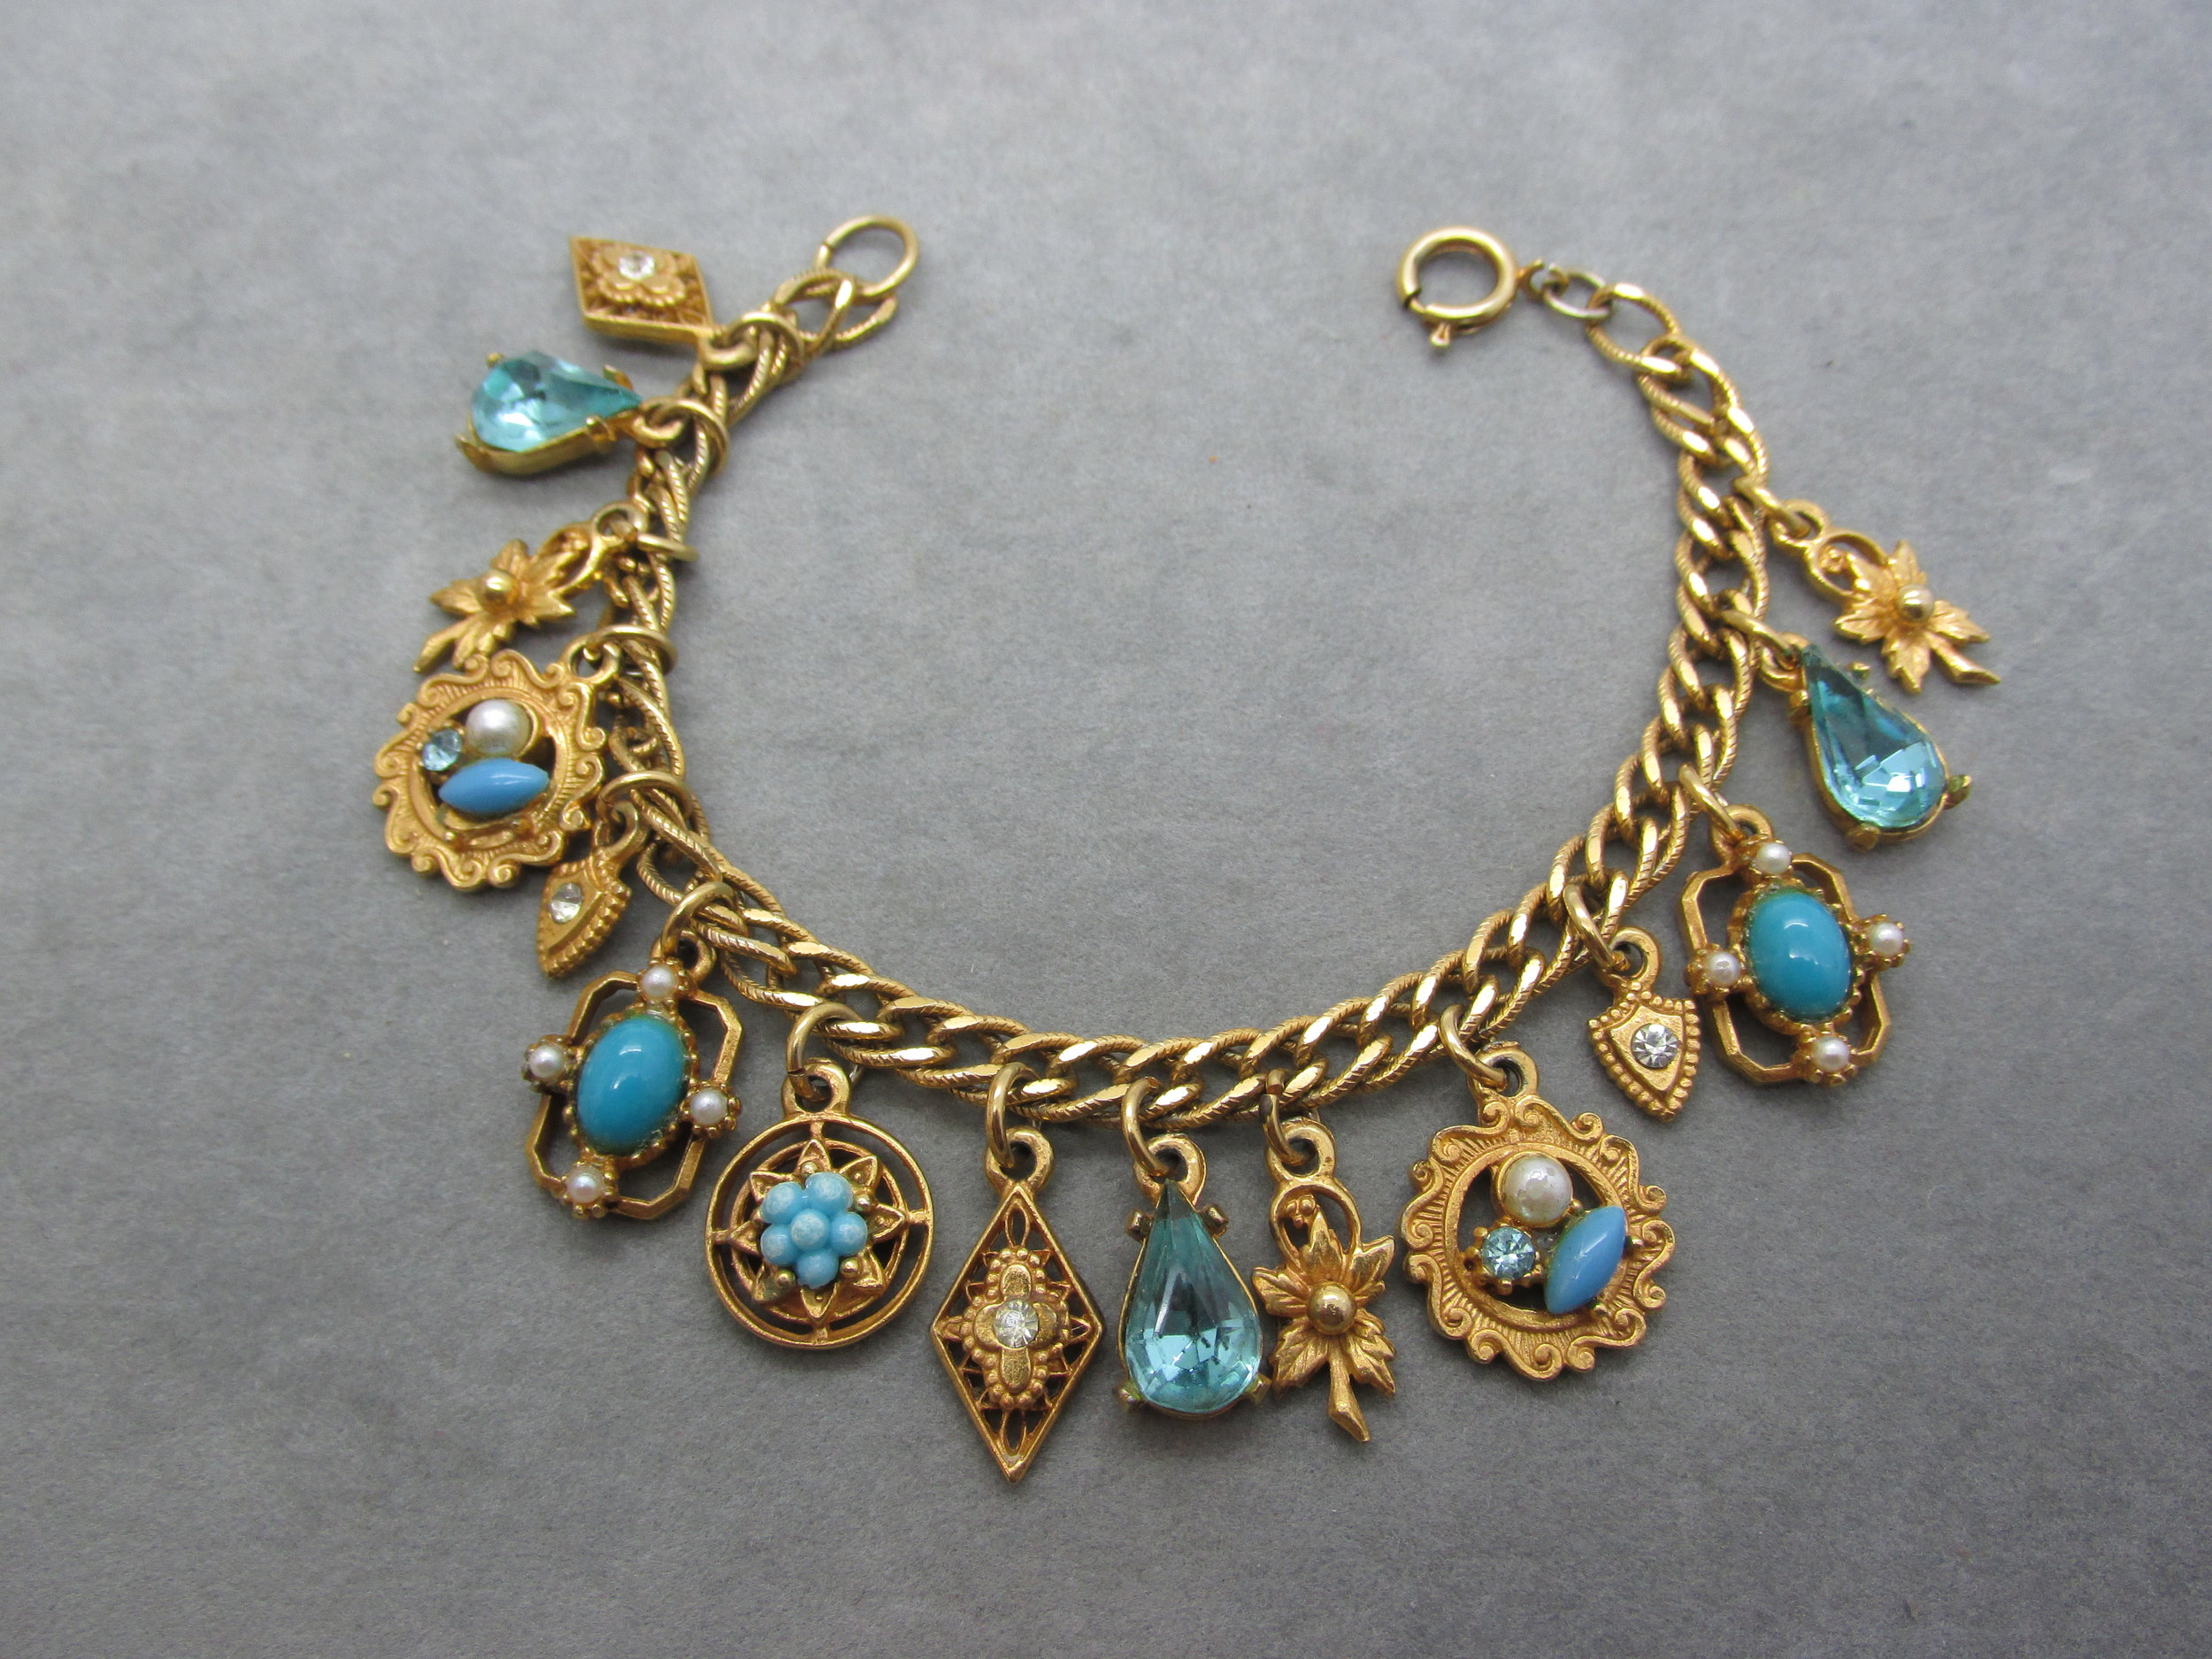 - Aaaah the 1950s, when soda Fountains, letterman jackets, and charm bracelets were all the rage. This vintage beauty has Turquoise Blue rhinestones and faux pearls and is in excellent condition. Available here in my shop or my ebay store. (click here to view). Come see what's new this week at MARQUIS ETC.